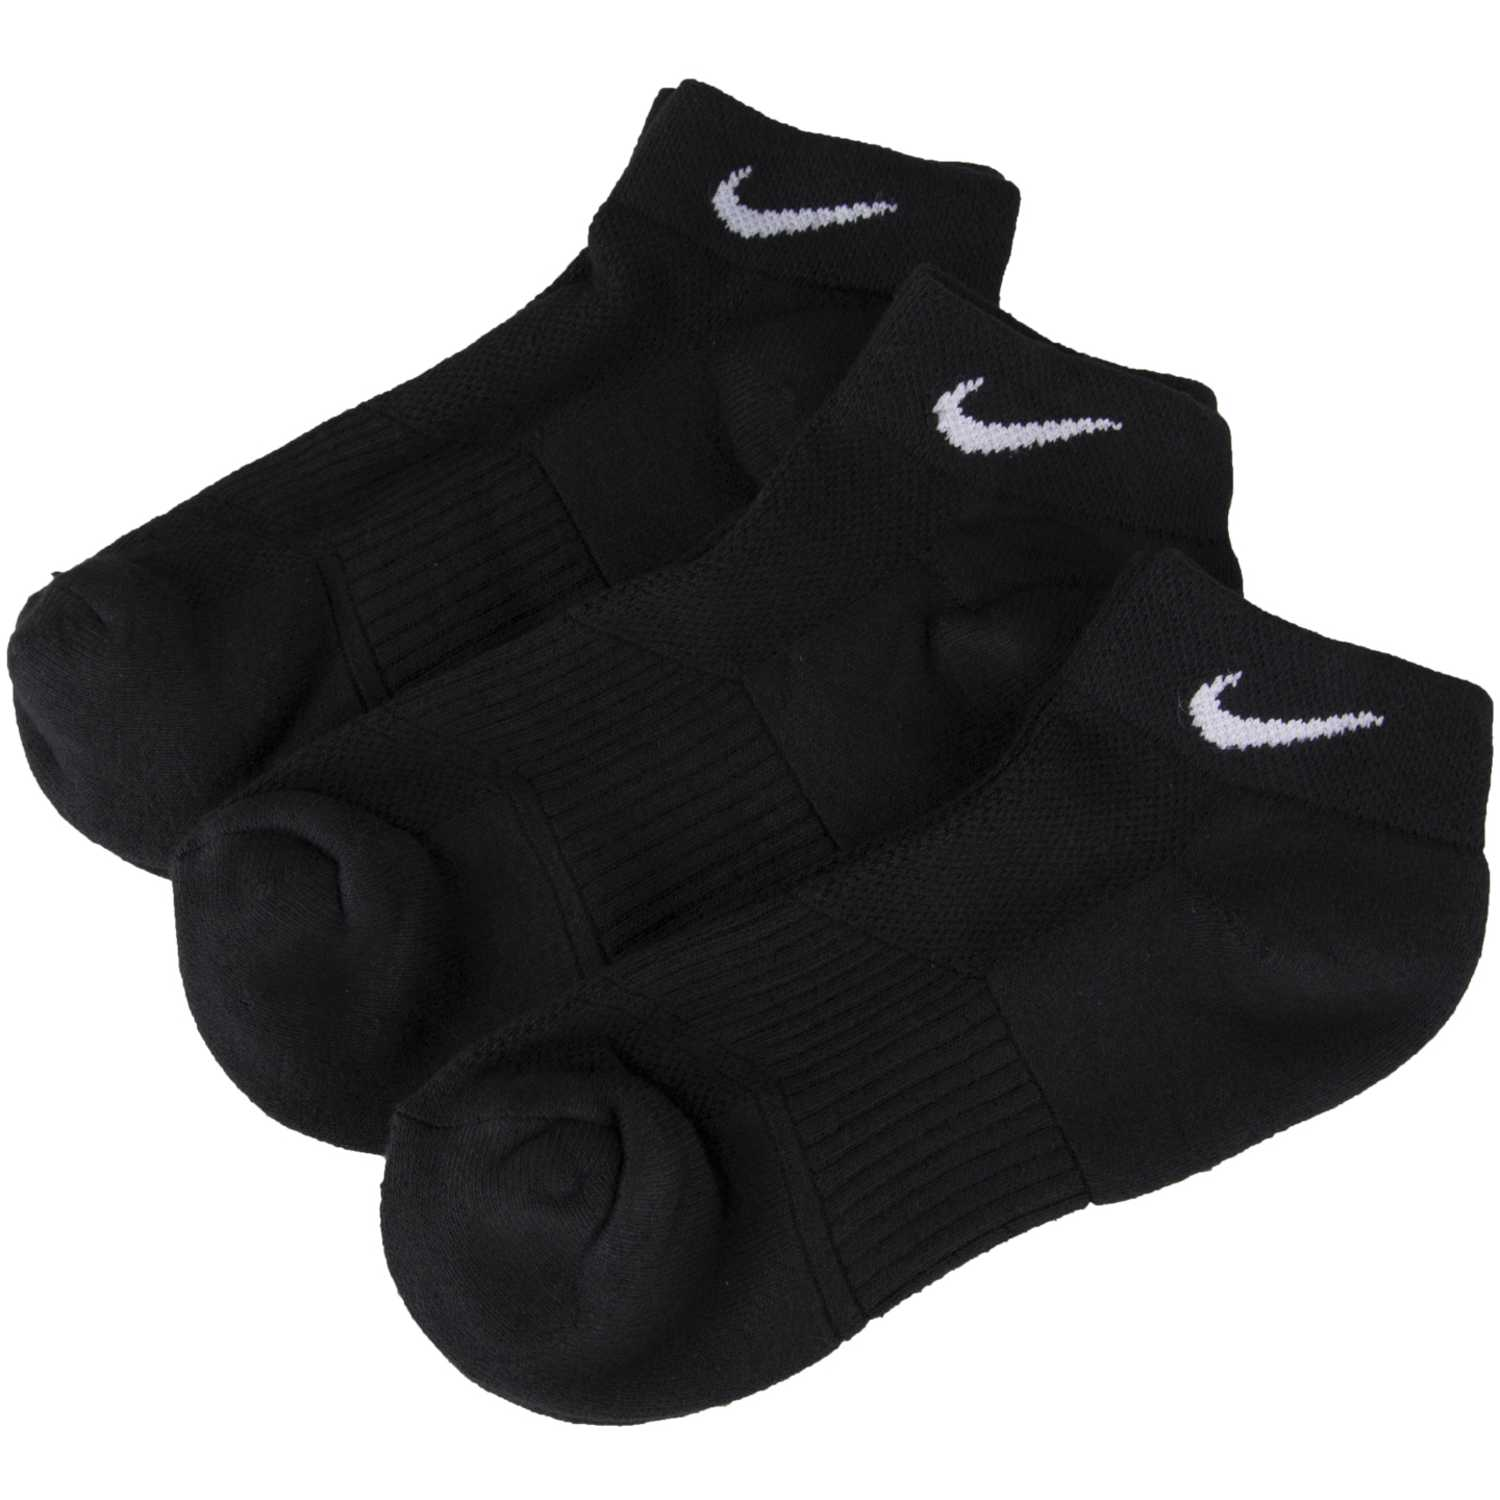 Nike 3PPK WMNS COTTON CUSHIONED LOW C Negro Medias Deportivas